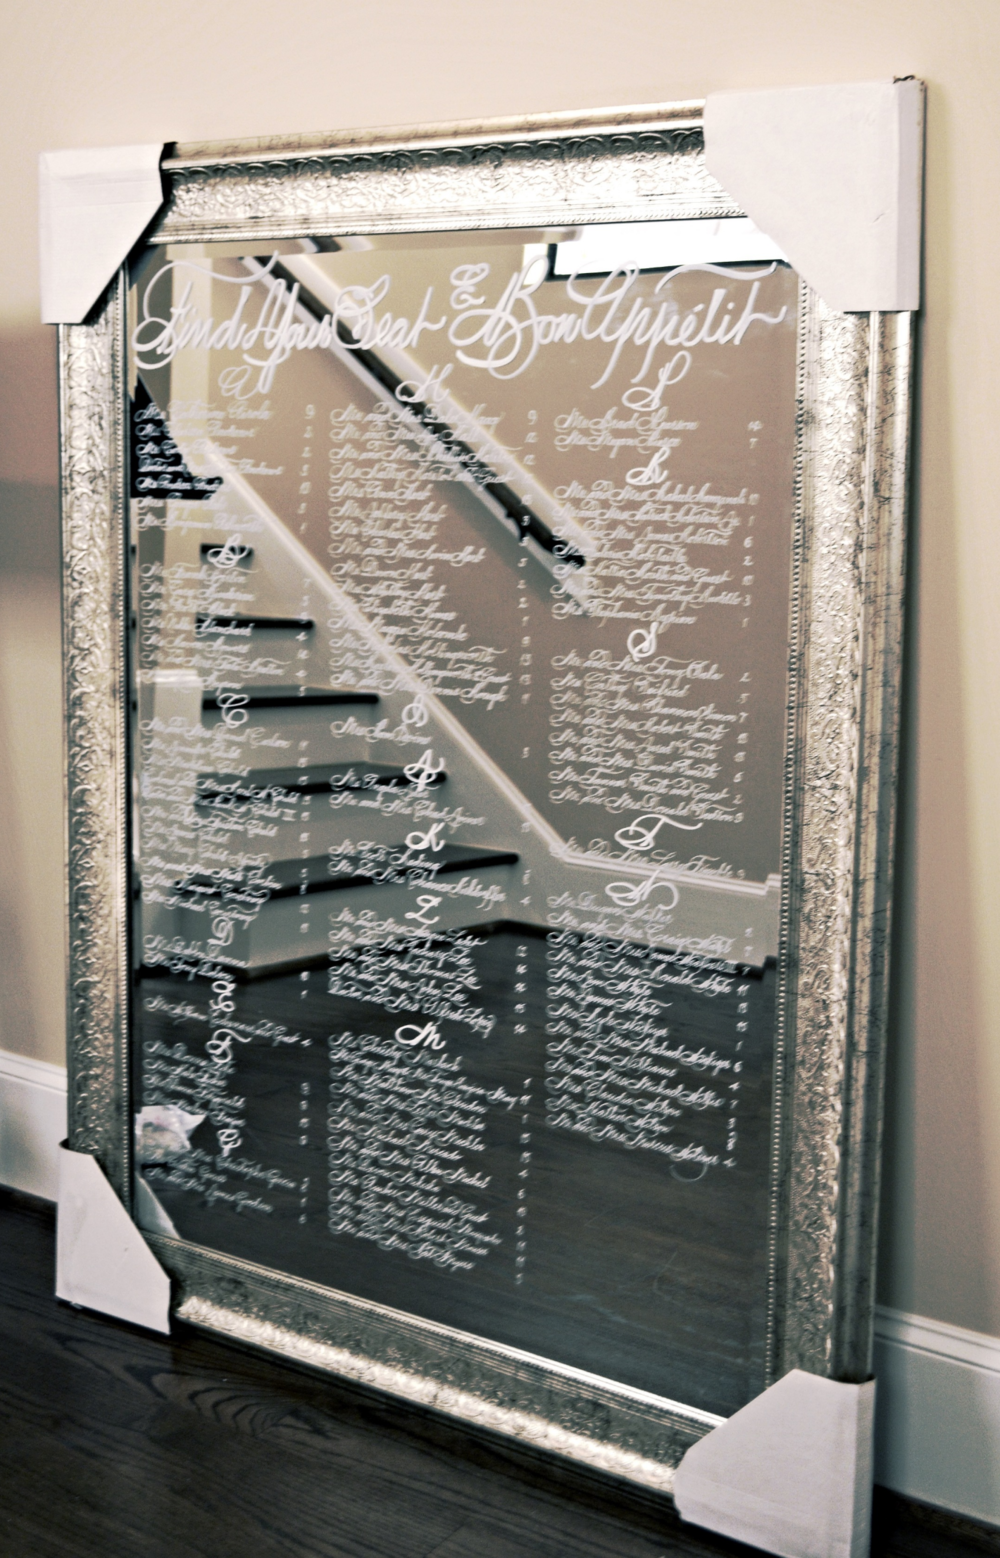 Bella Grafia Calligraphy featured in Houston Weddings Magazine